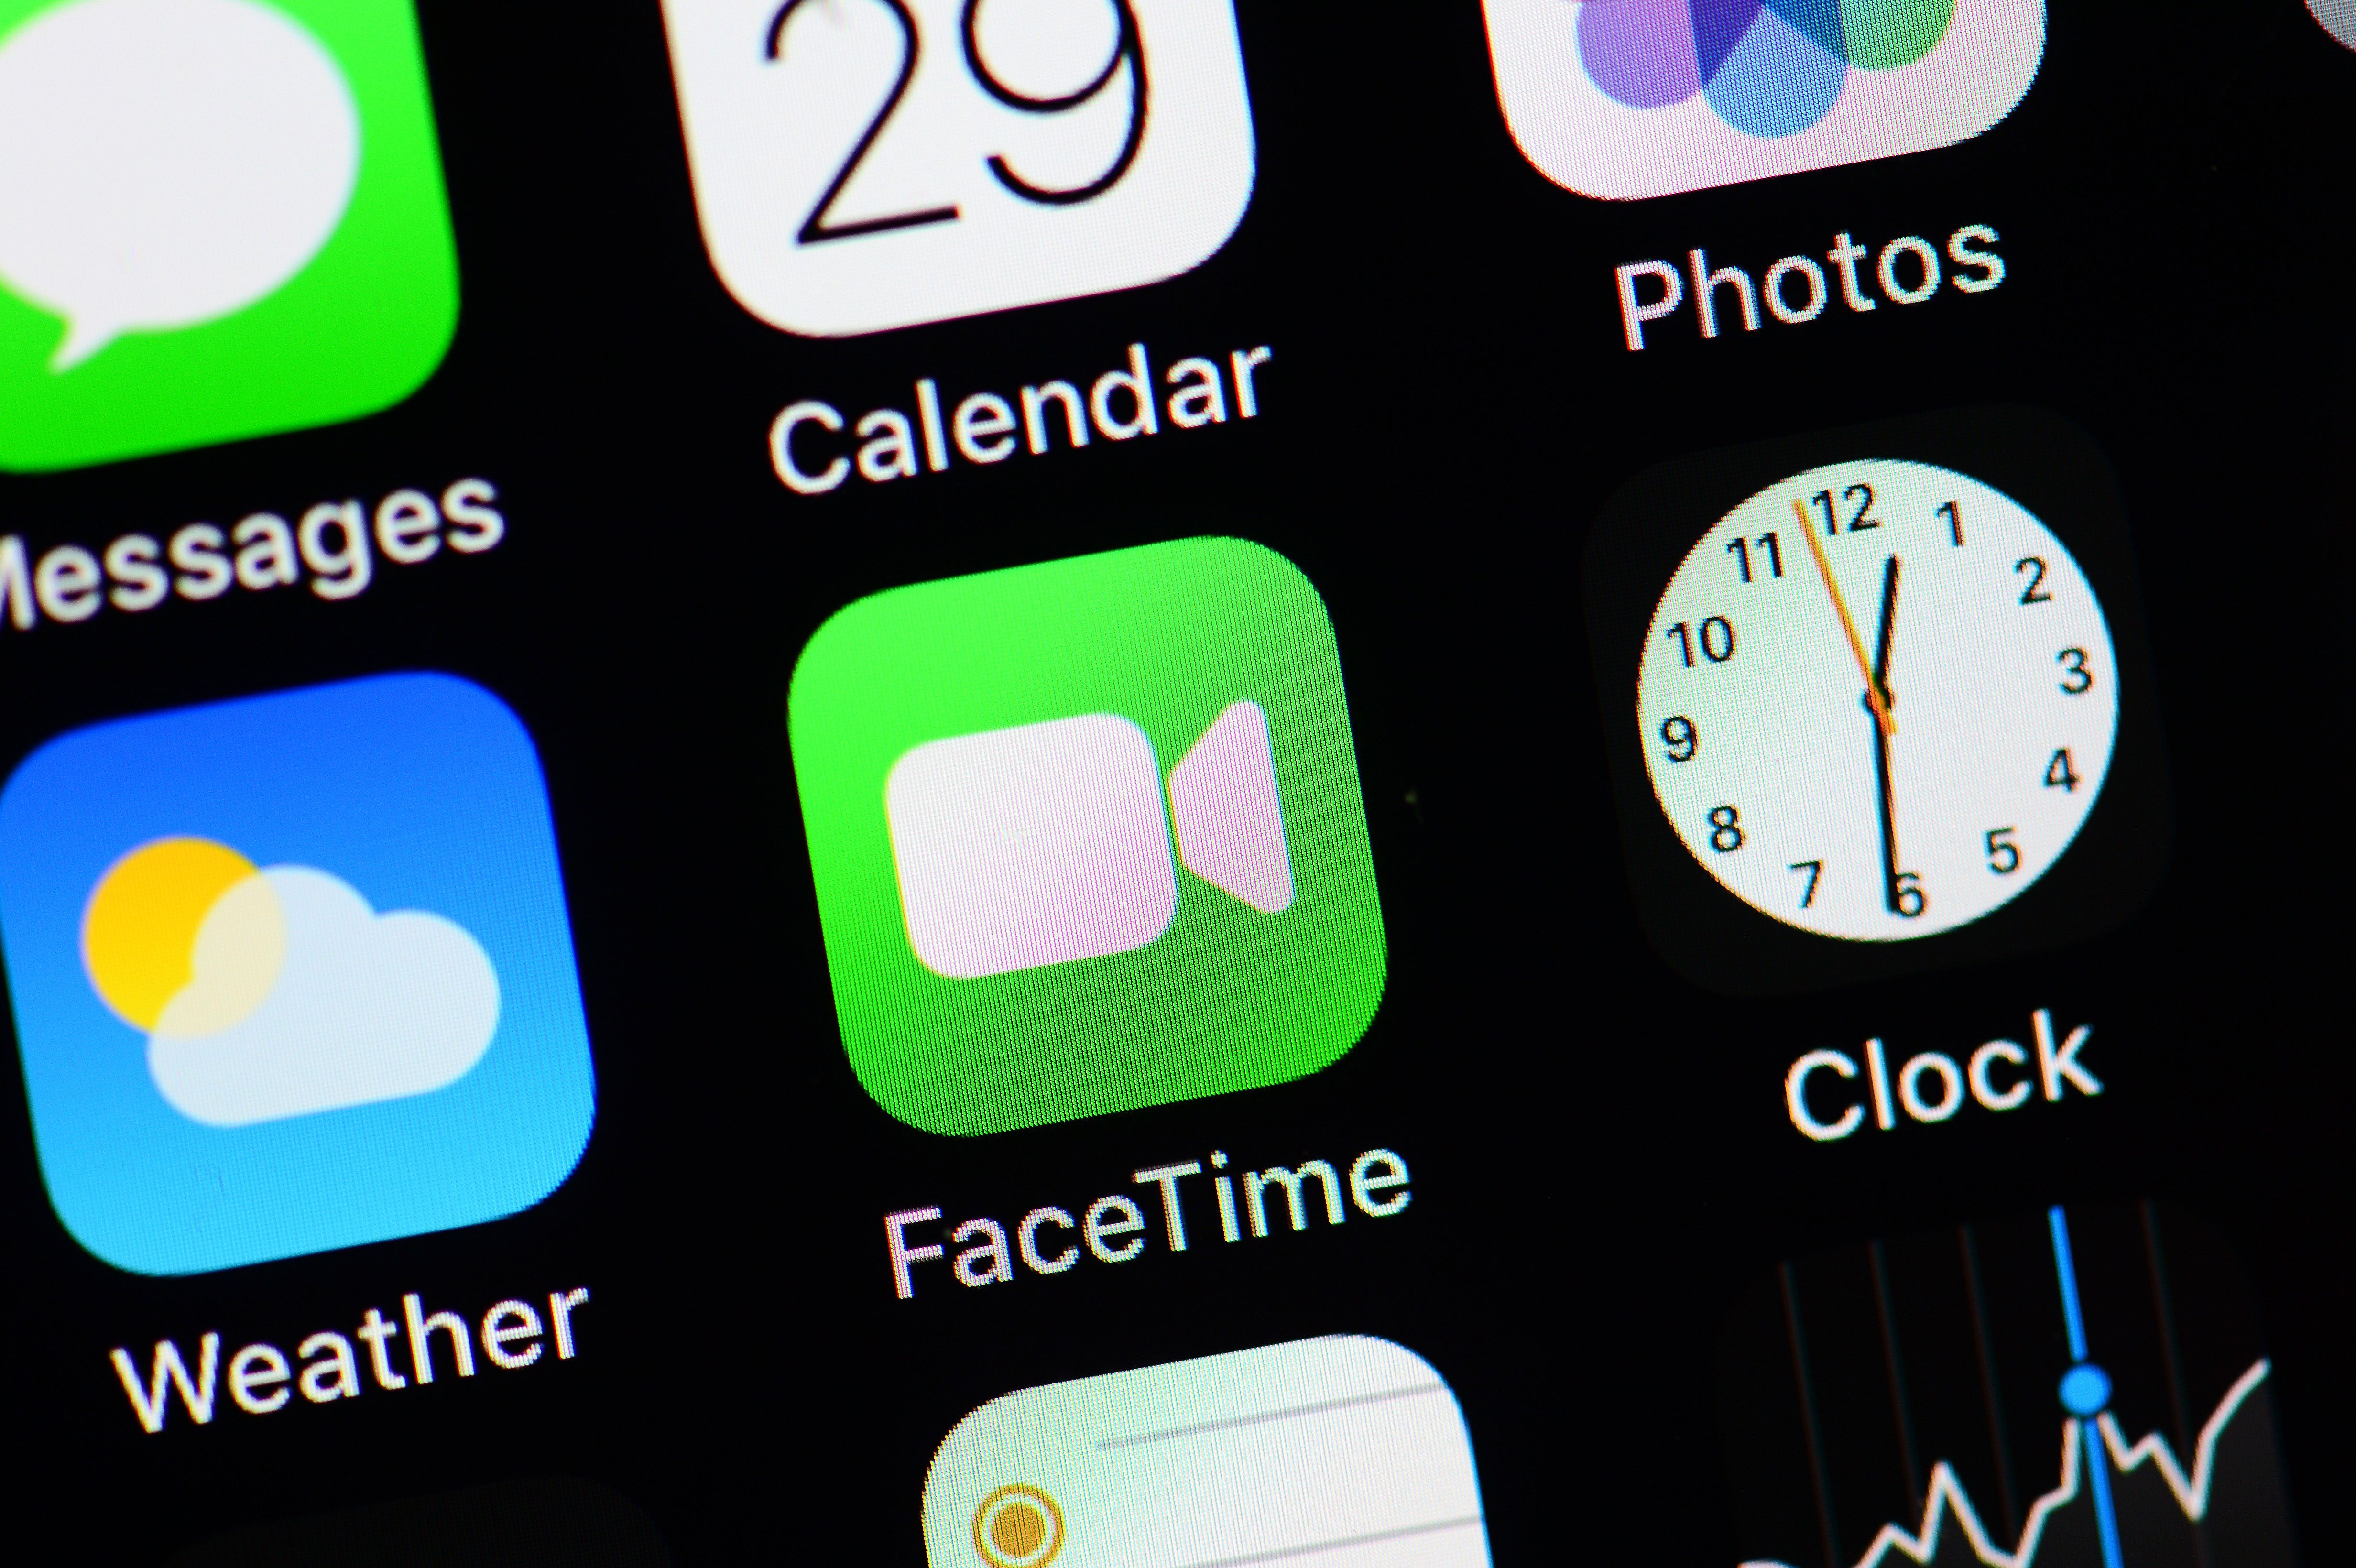 how to fix my facetime when it says waiting for activation